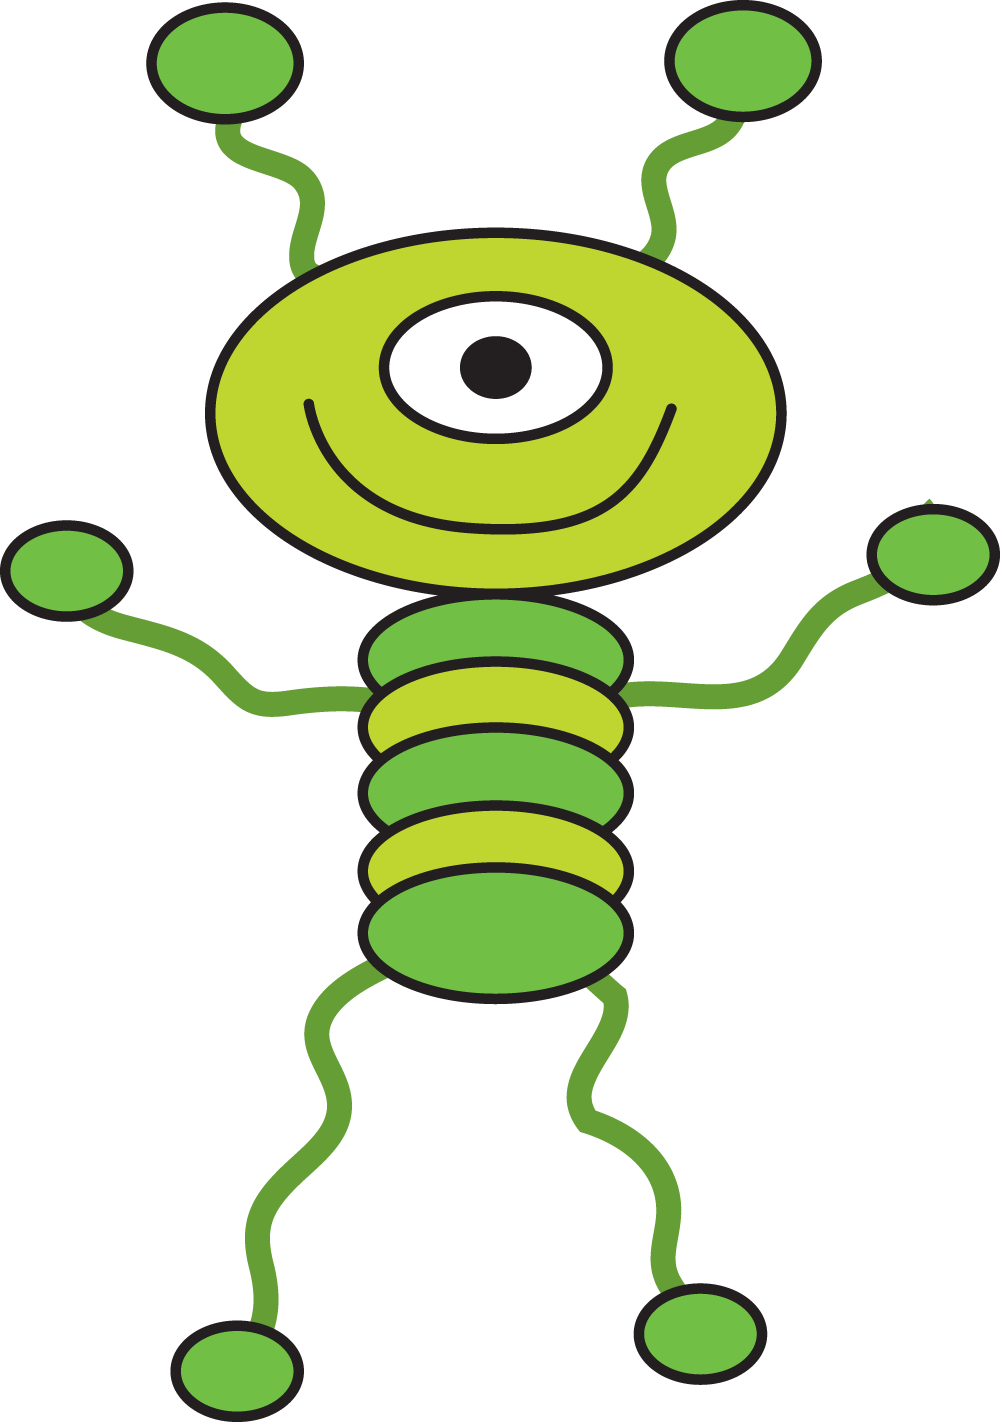 Cartoon Alien Clipart   Free download on ClipArtMag